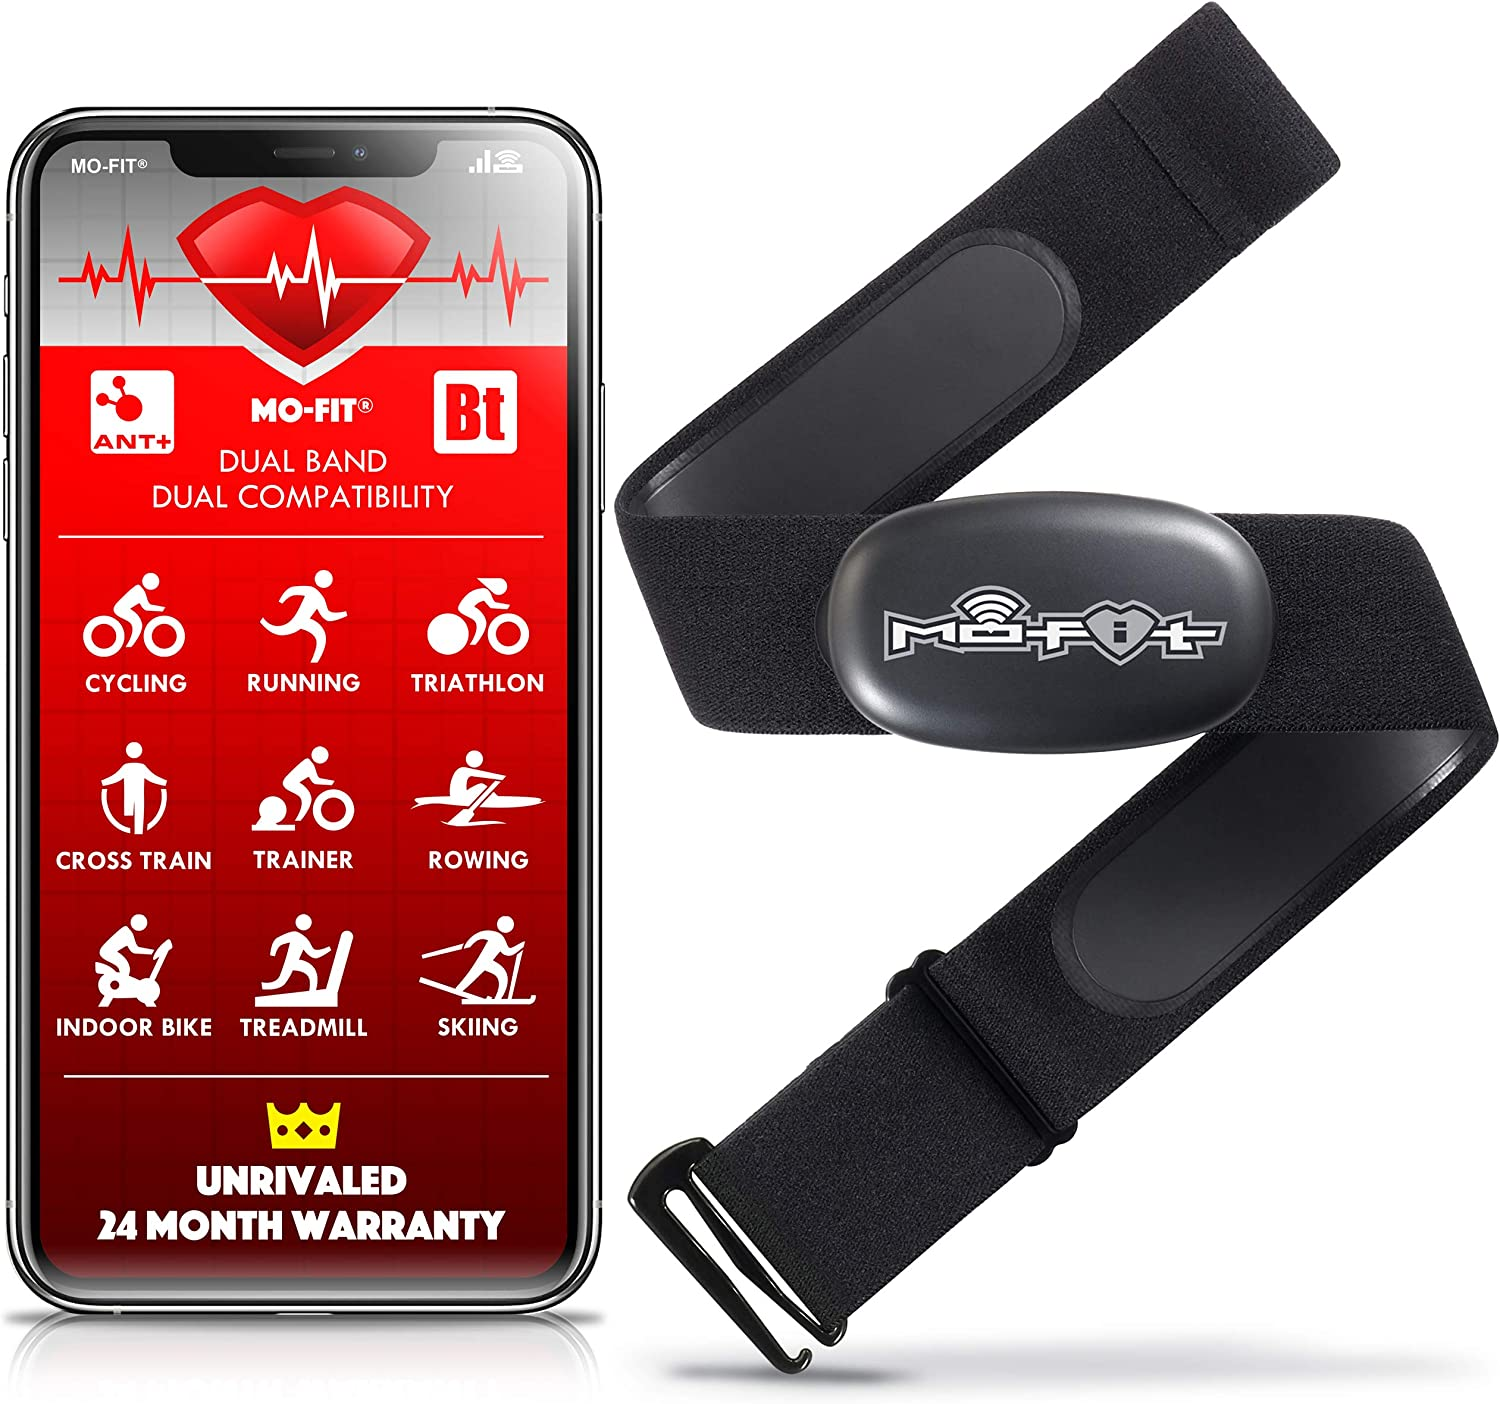 Mo-Fit Heart Rate Monitor Chest Strap for Garmin, Apple, Android, ANT+ and Most Bluetooth 4.0 Enabled Fitness Devices